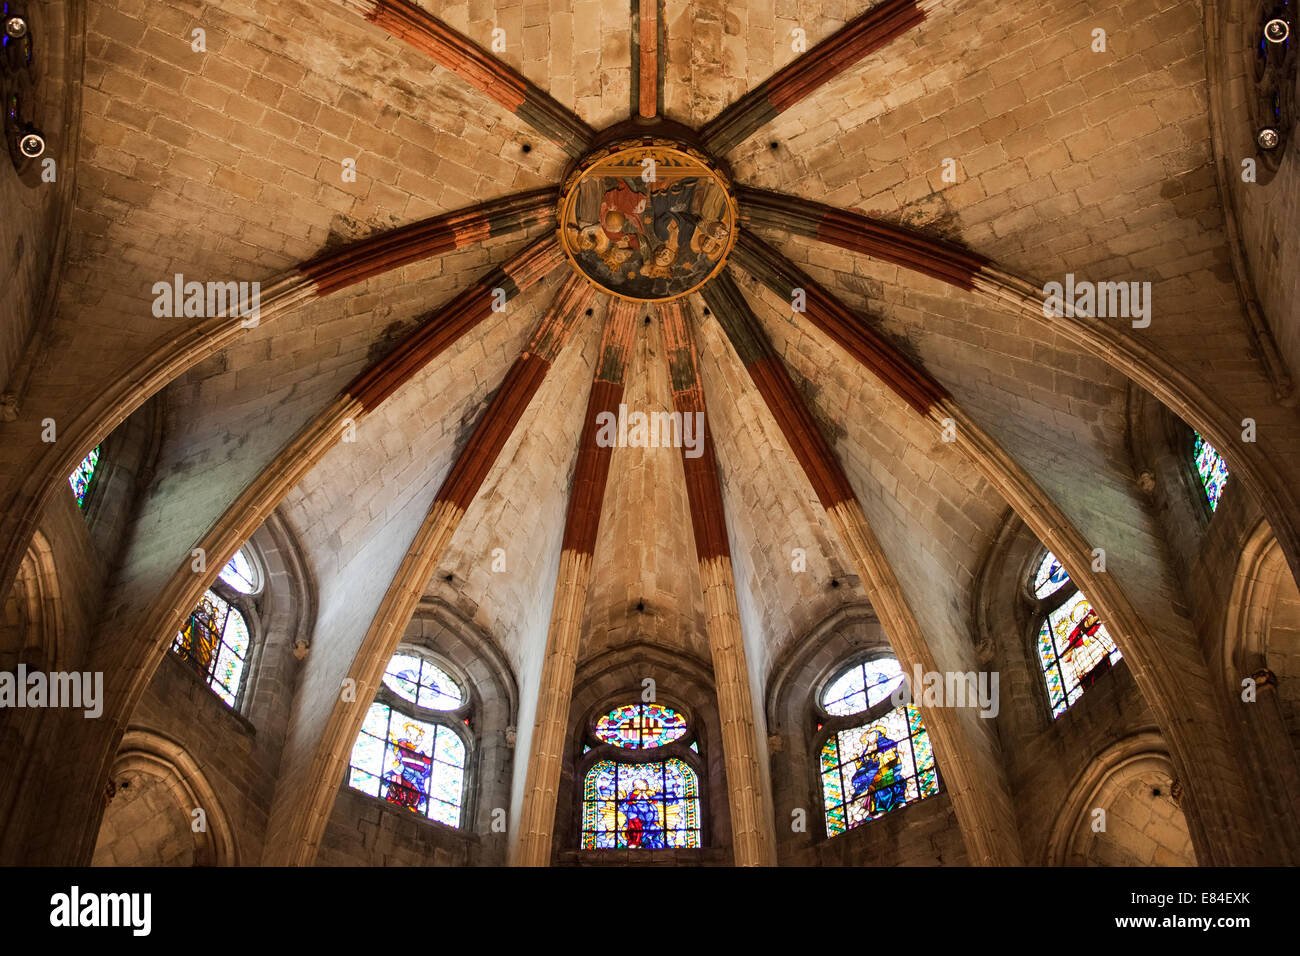 Gothic ribbed vault of the apse in Basilica of Santa Maria